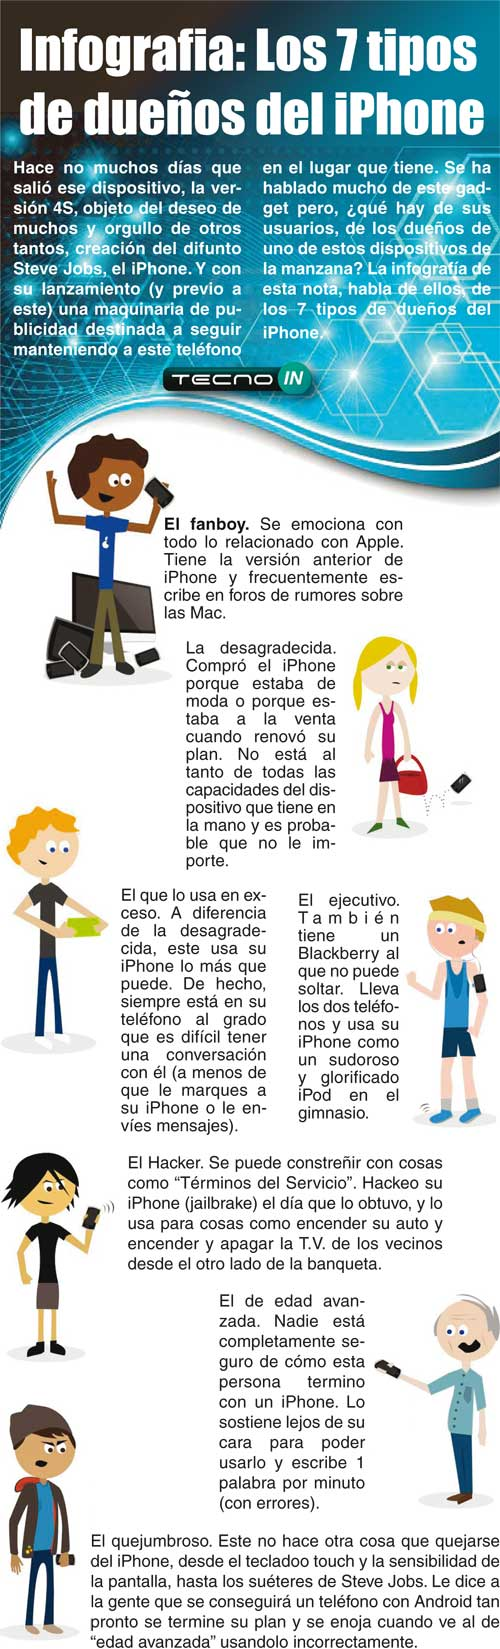 952289909infografia_usuarios_iphone[1]